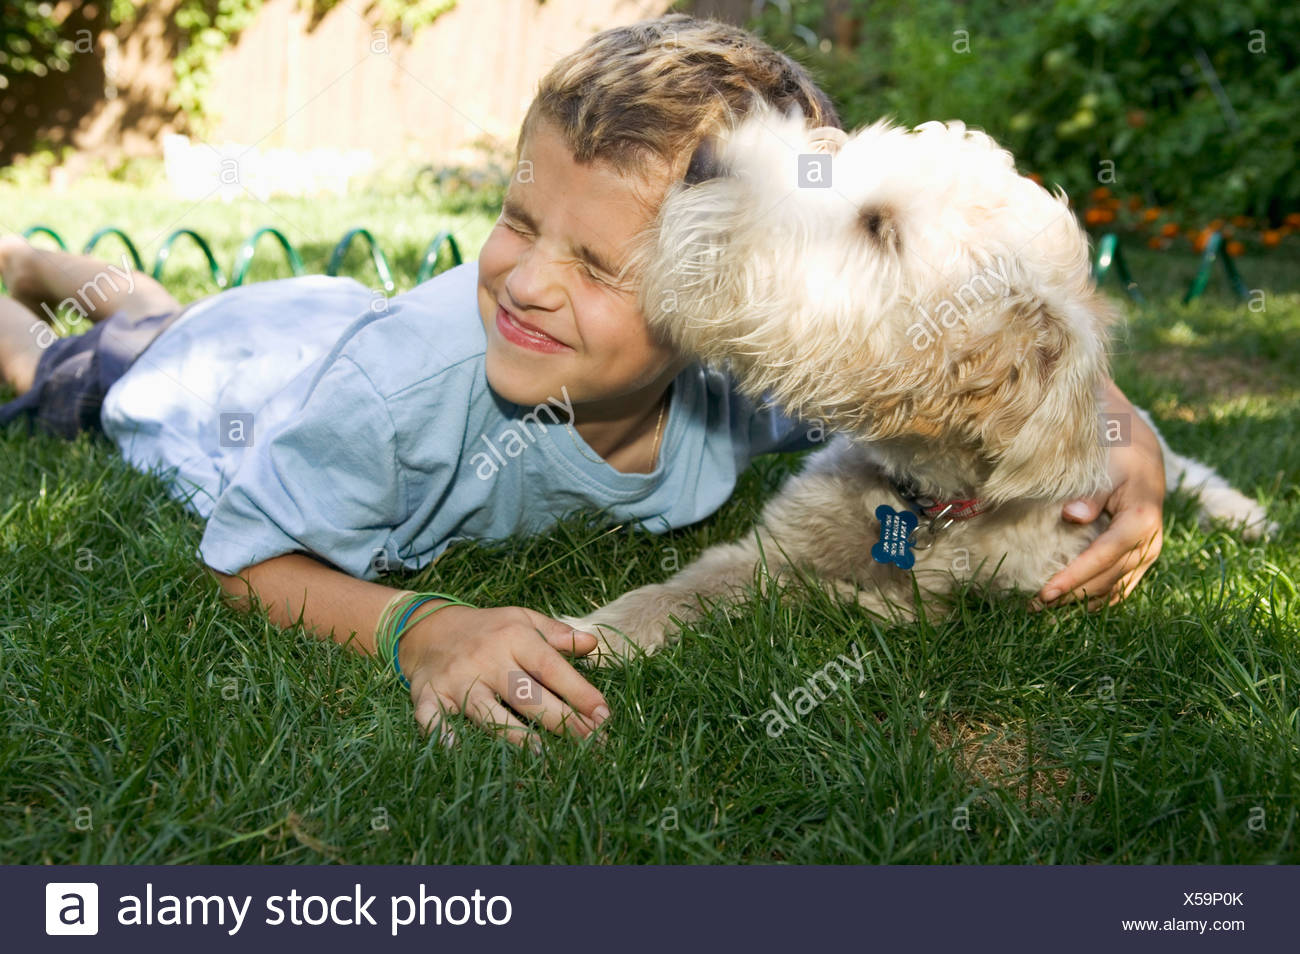 Boy and dog lying down together outdoors - Stock Image